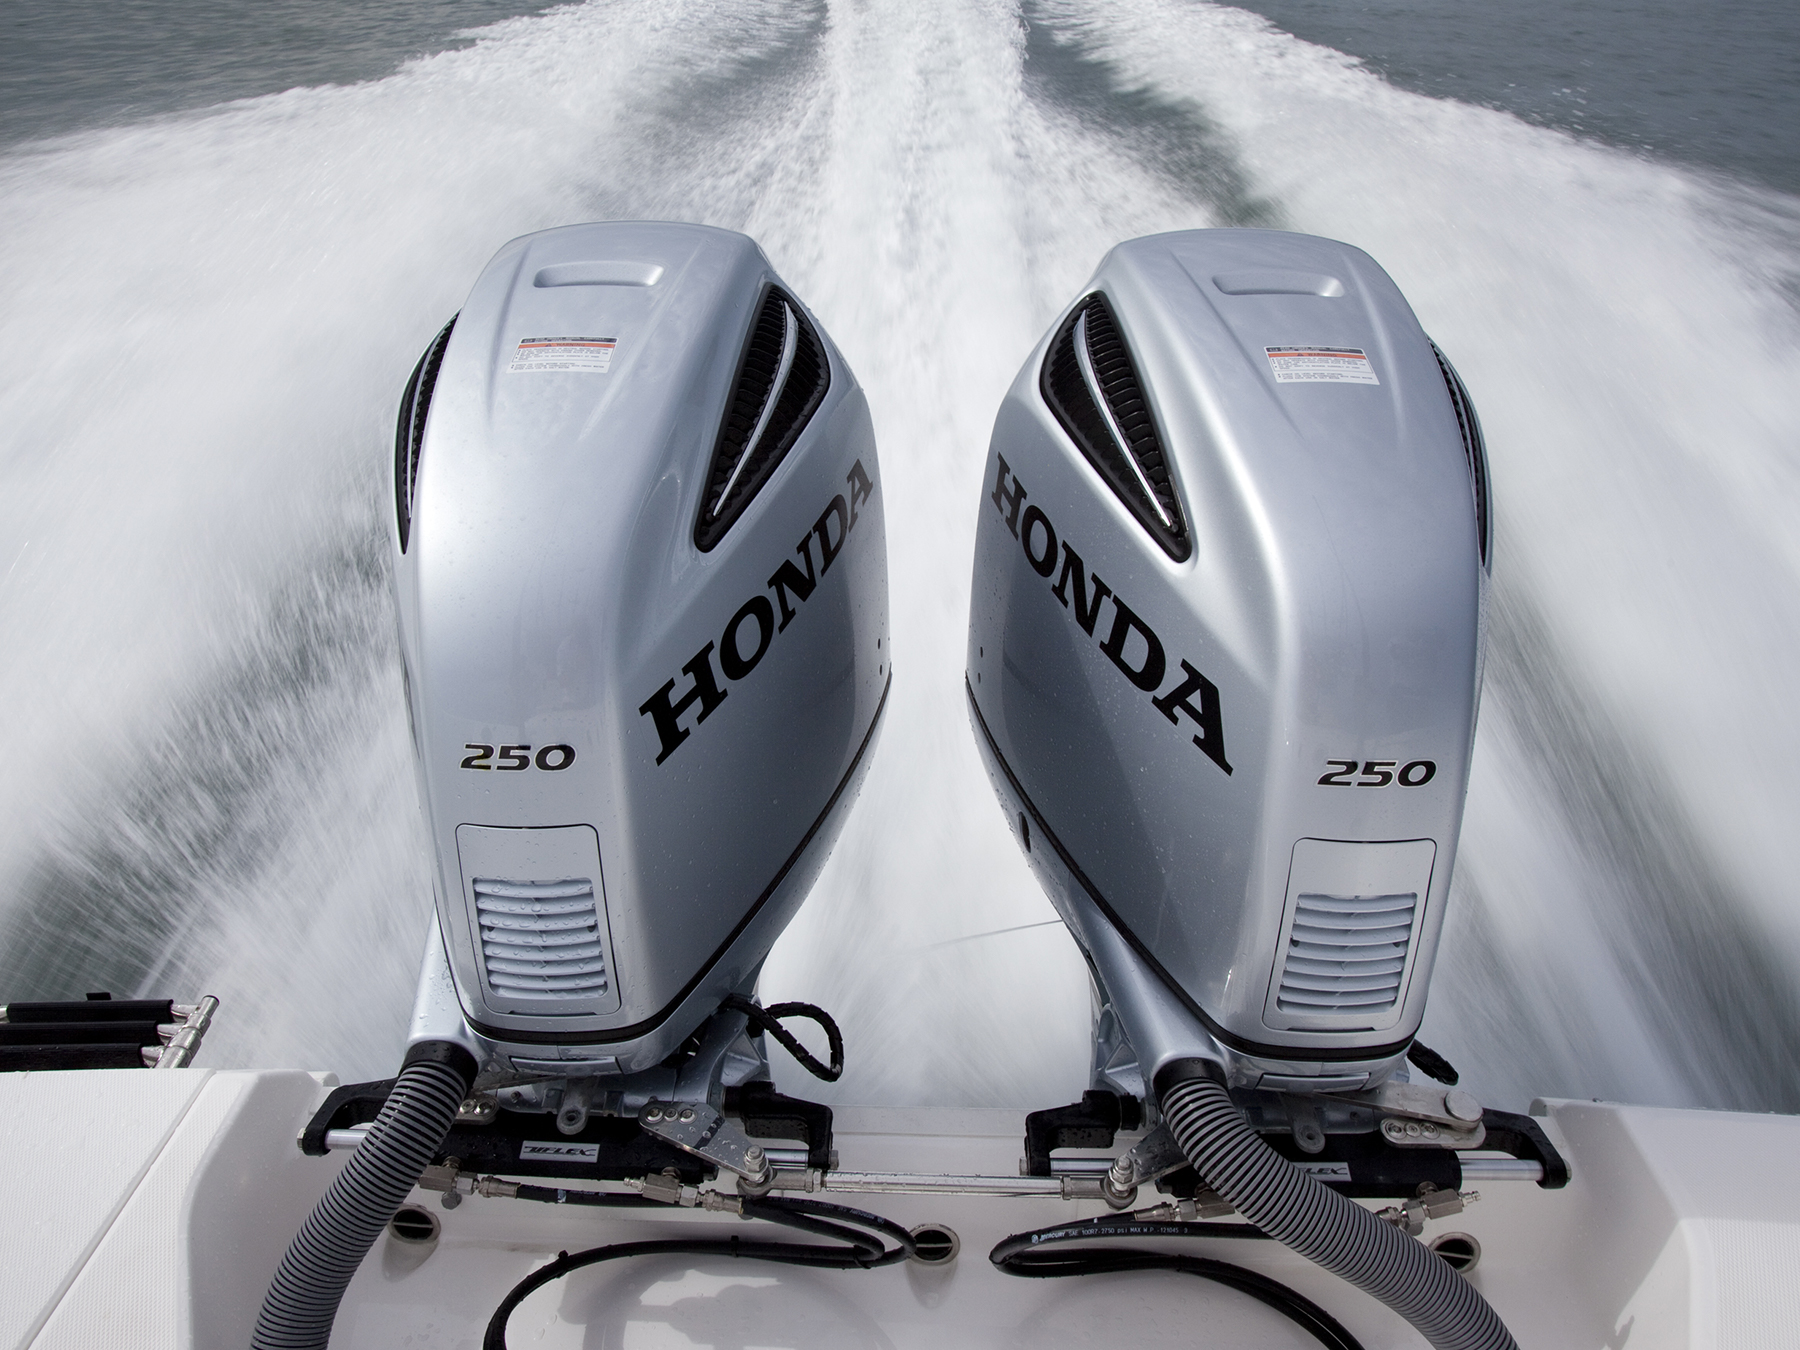 Action shot of 2 Honda 250 engines in the water